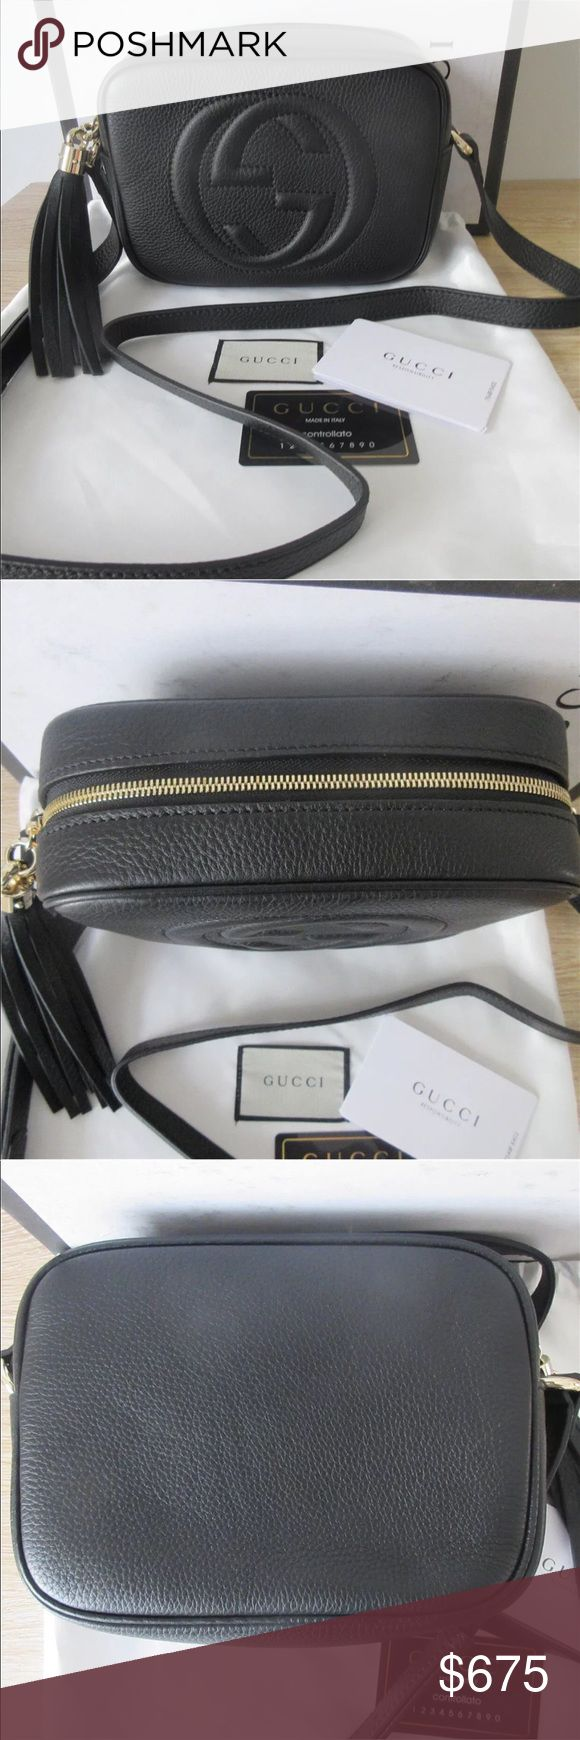 Gucci Soho Disco Crossbody Bag Black 100% Authentic 🔺 We are a very negotiable service 🔺 We provide overnight shipping and express shipping 🔺 Our transactions are made through third party applications 🔺 If you are interested in buying this product please contact us via 646-431-6521 🔺 Gucci Bags Crossbody Bags